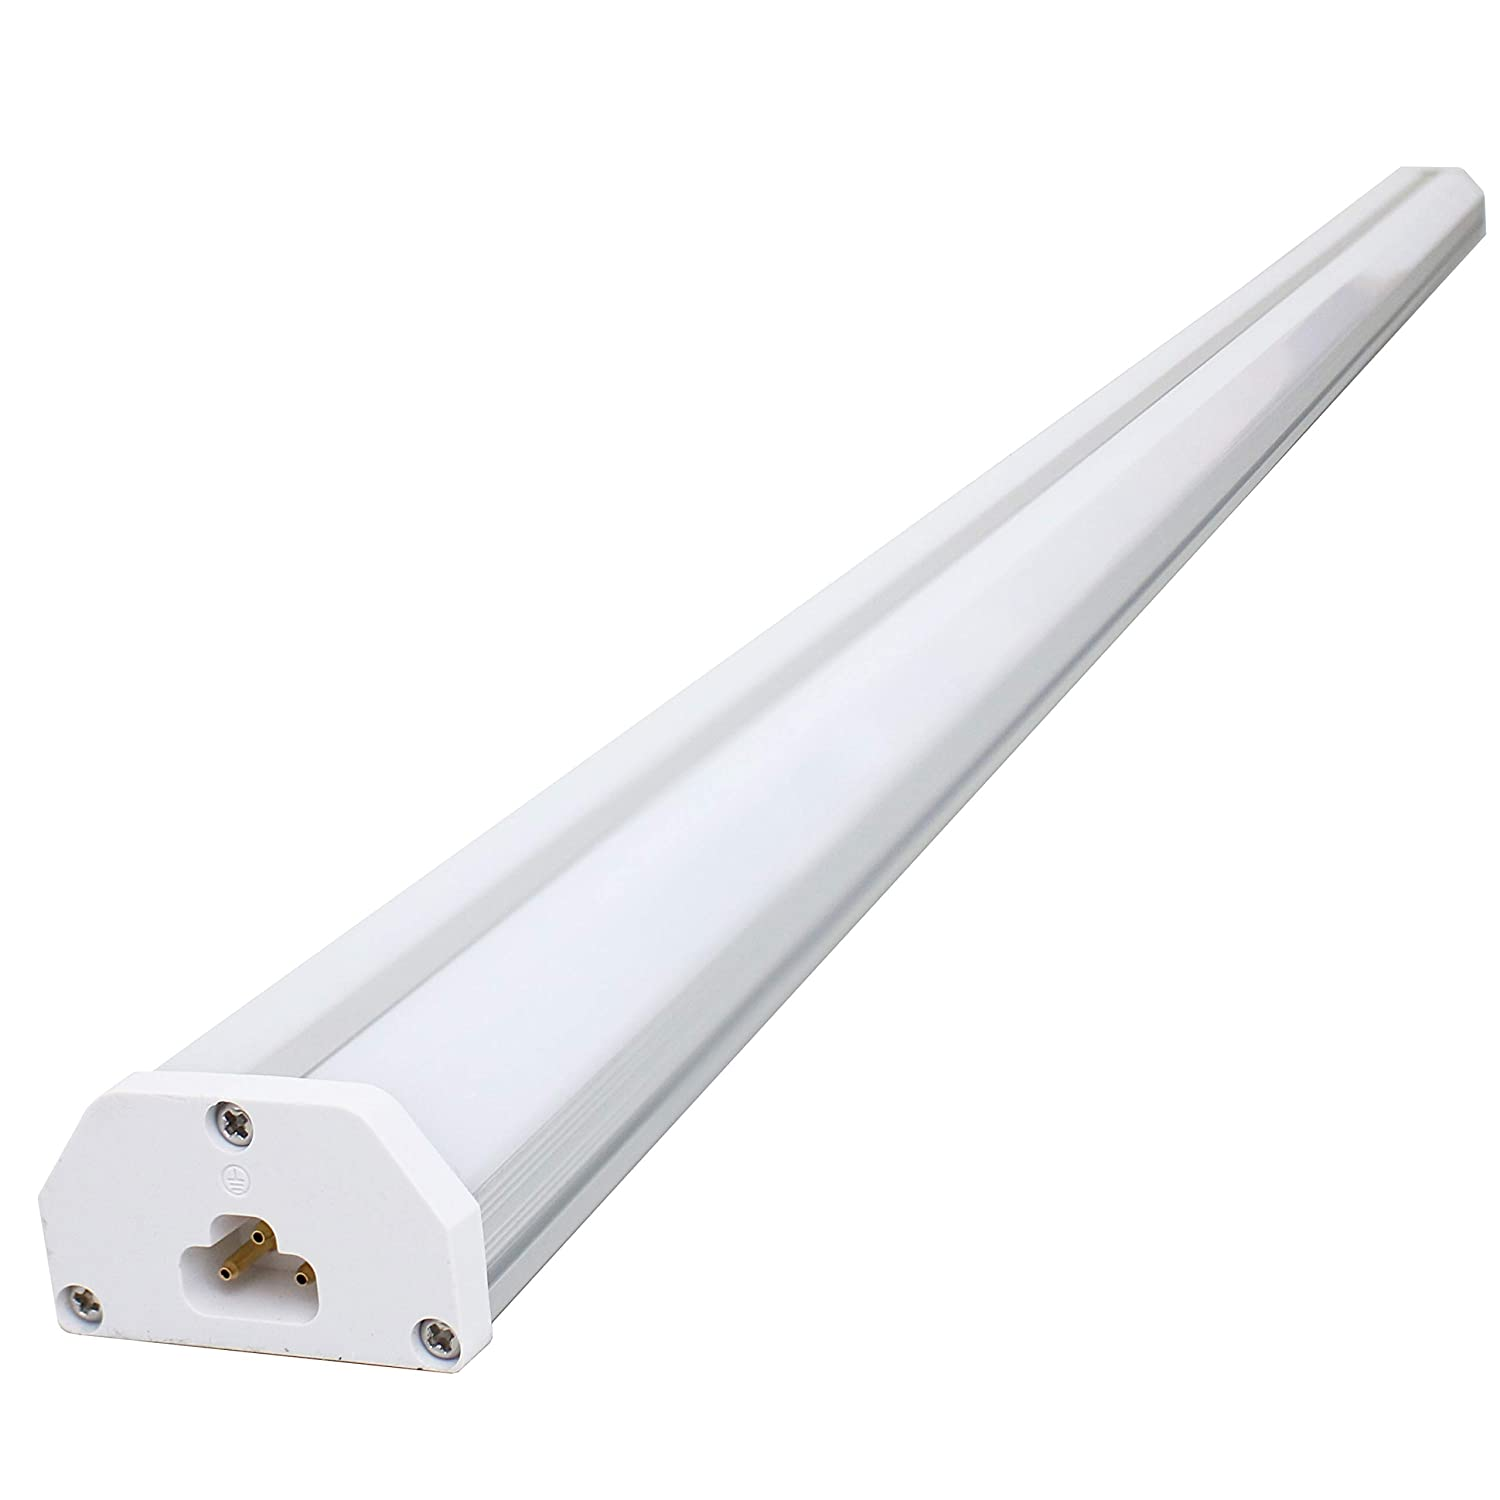 Atm led double integrated t5 led commercial grade utility shop light